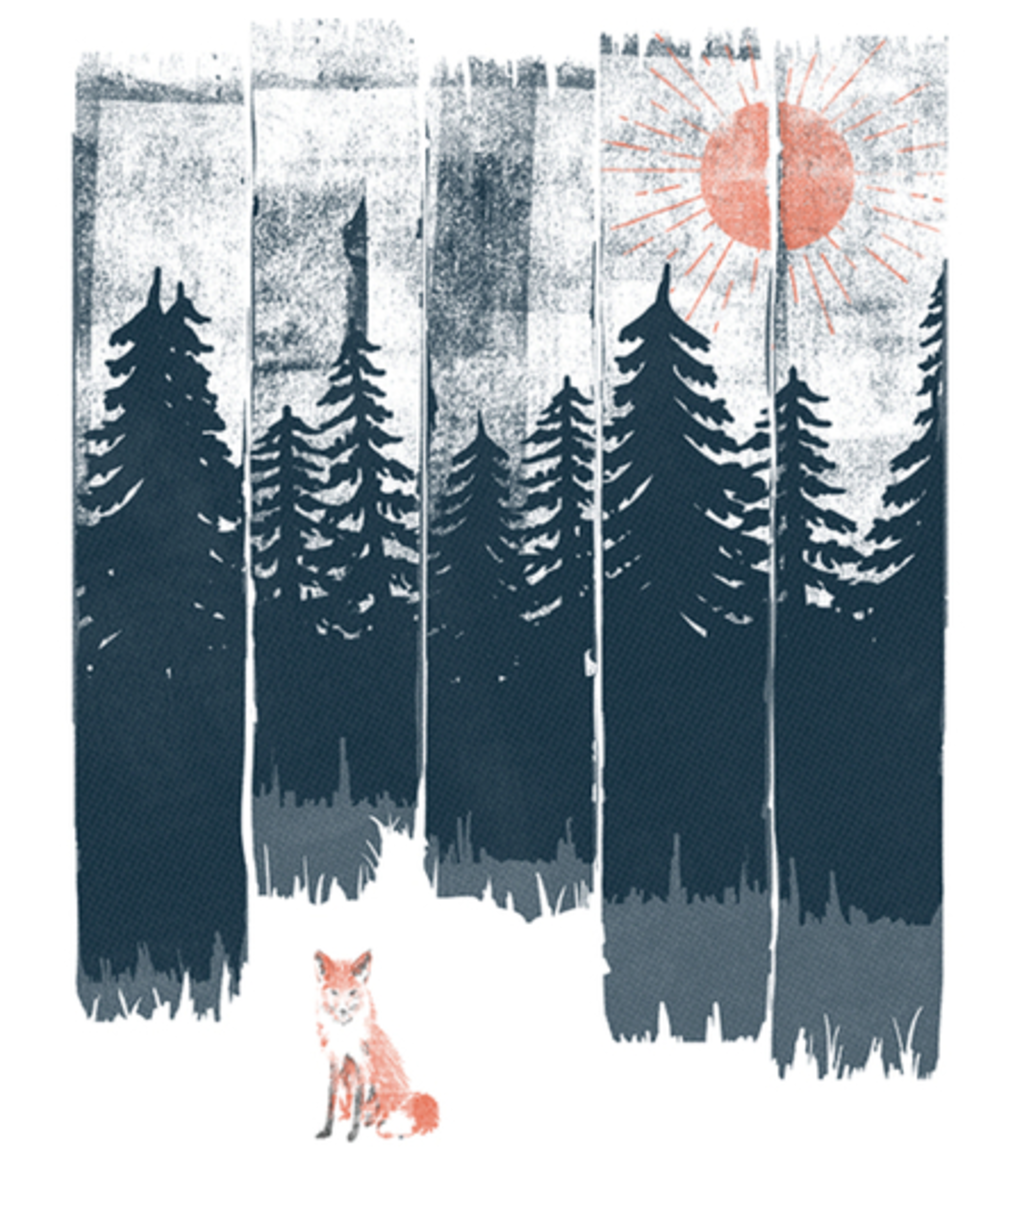 Qwertee: A Fox in the Wild